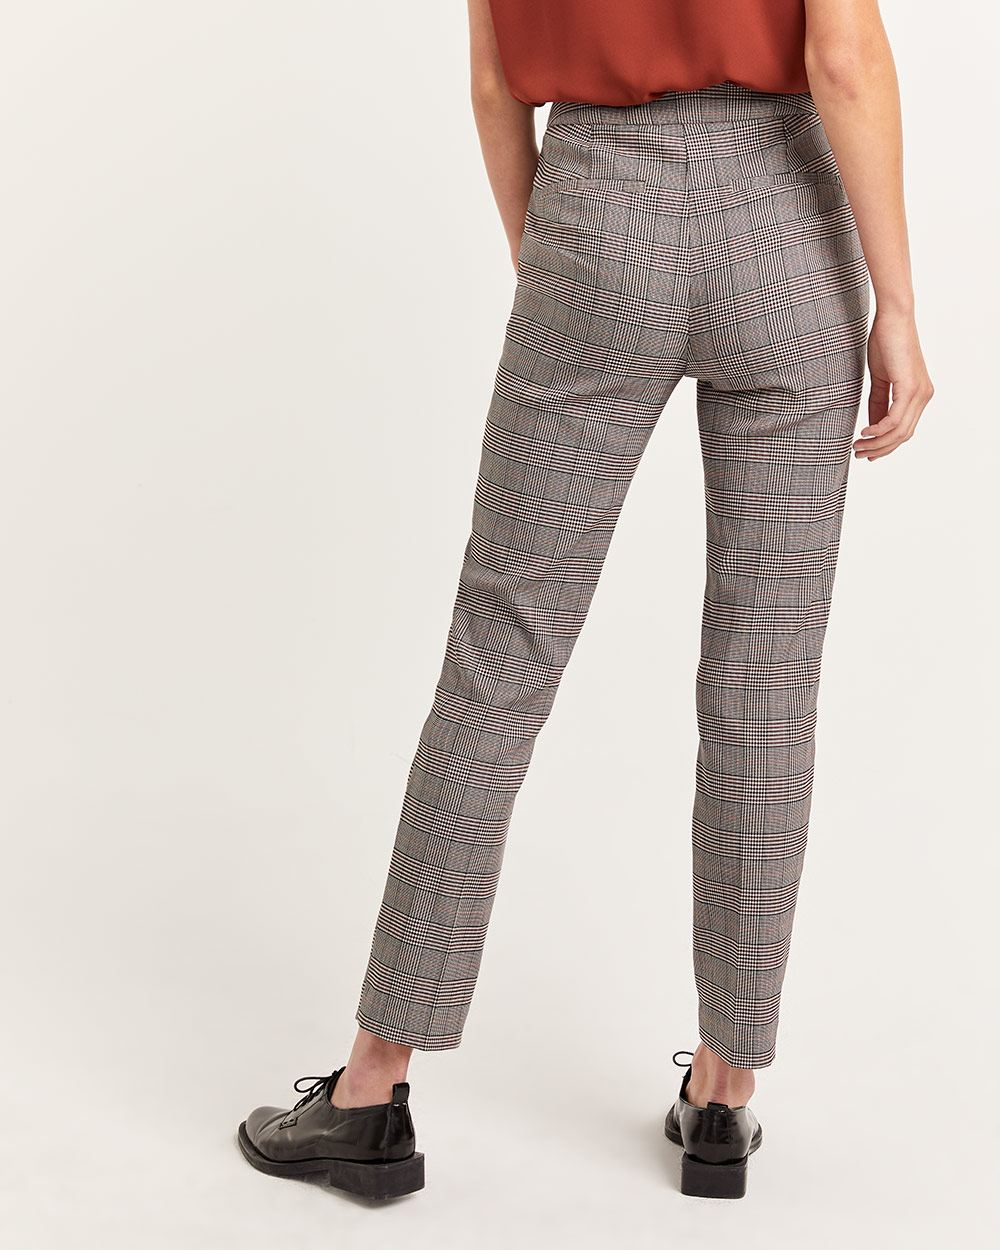 The Iconic High Waist Pull On Glen Plaid Pants